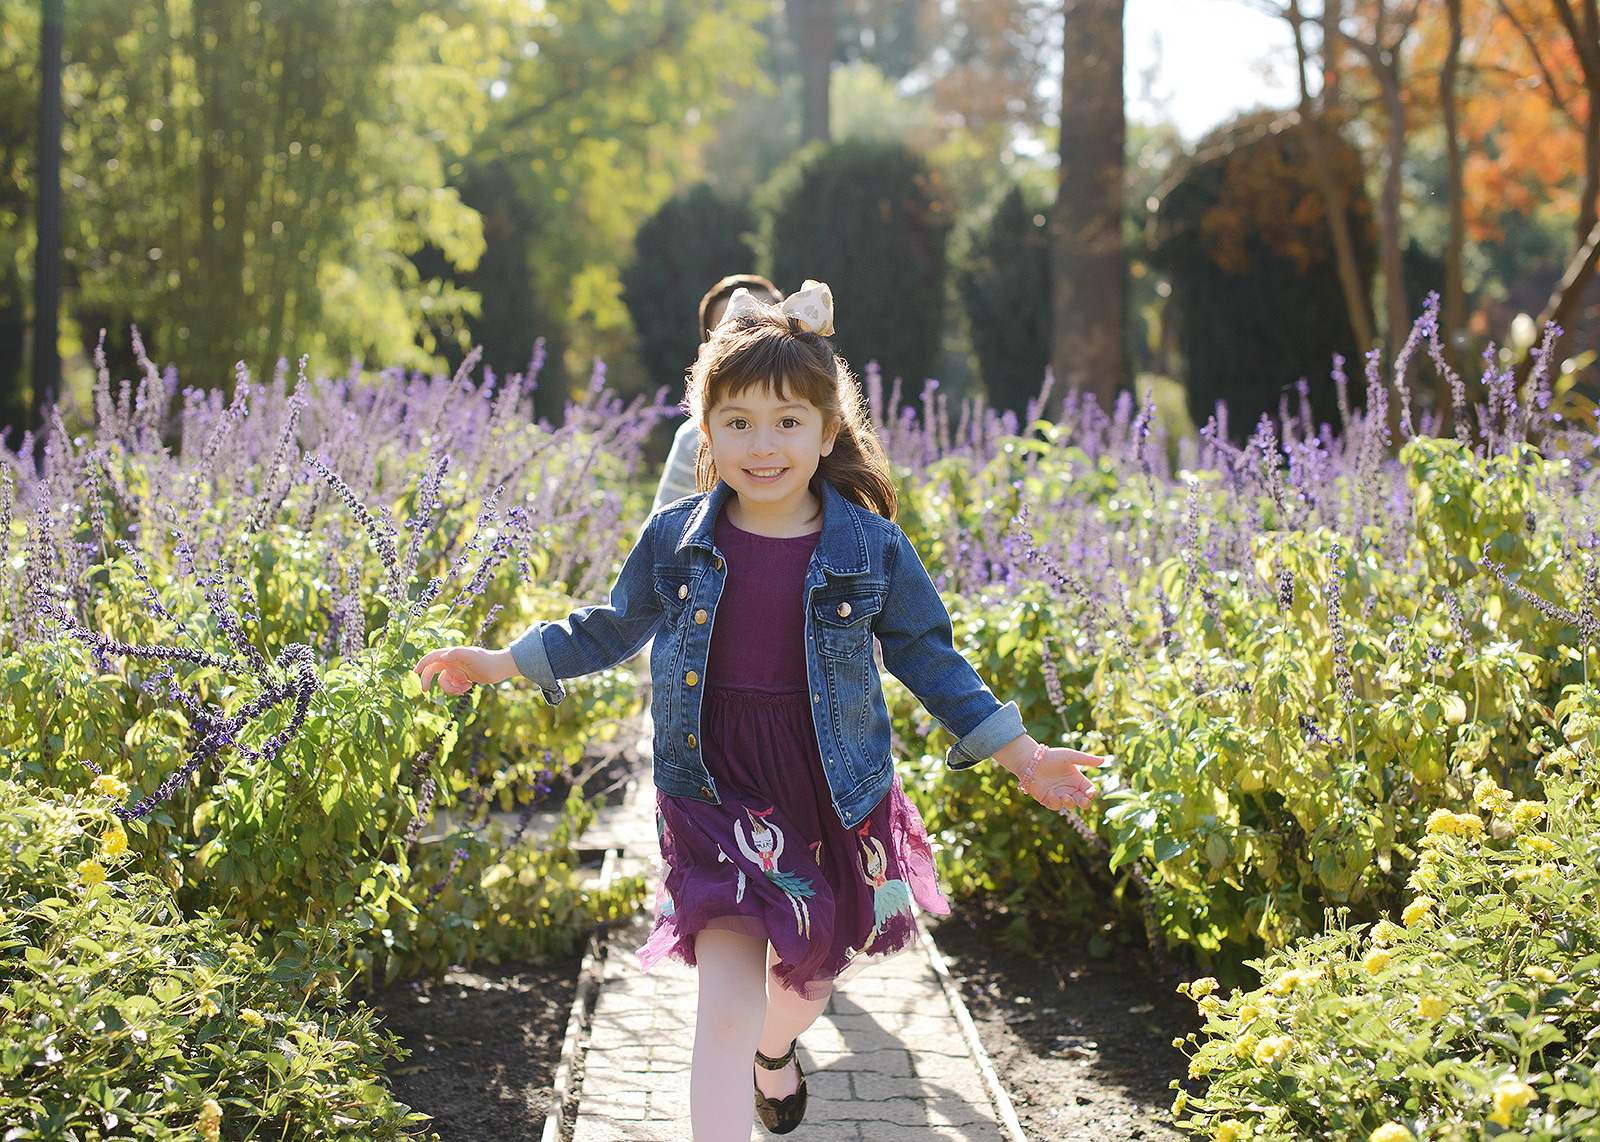 Daughter running through purple flower field wearing purple dress at State Capitol